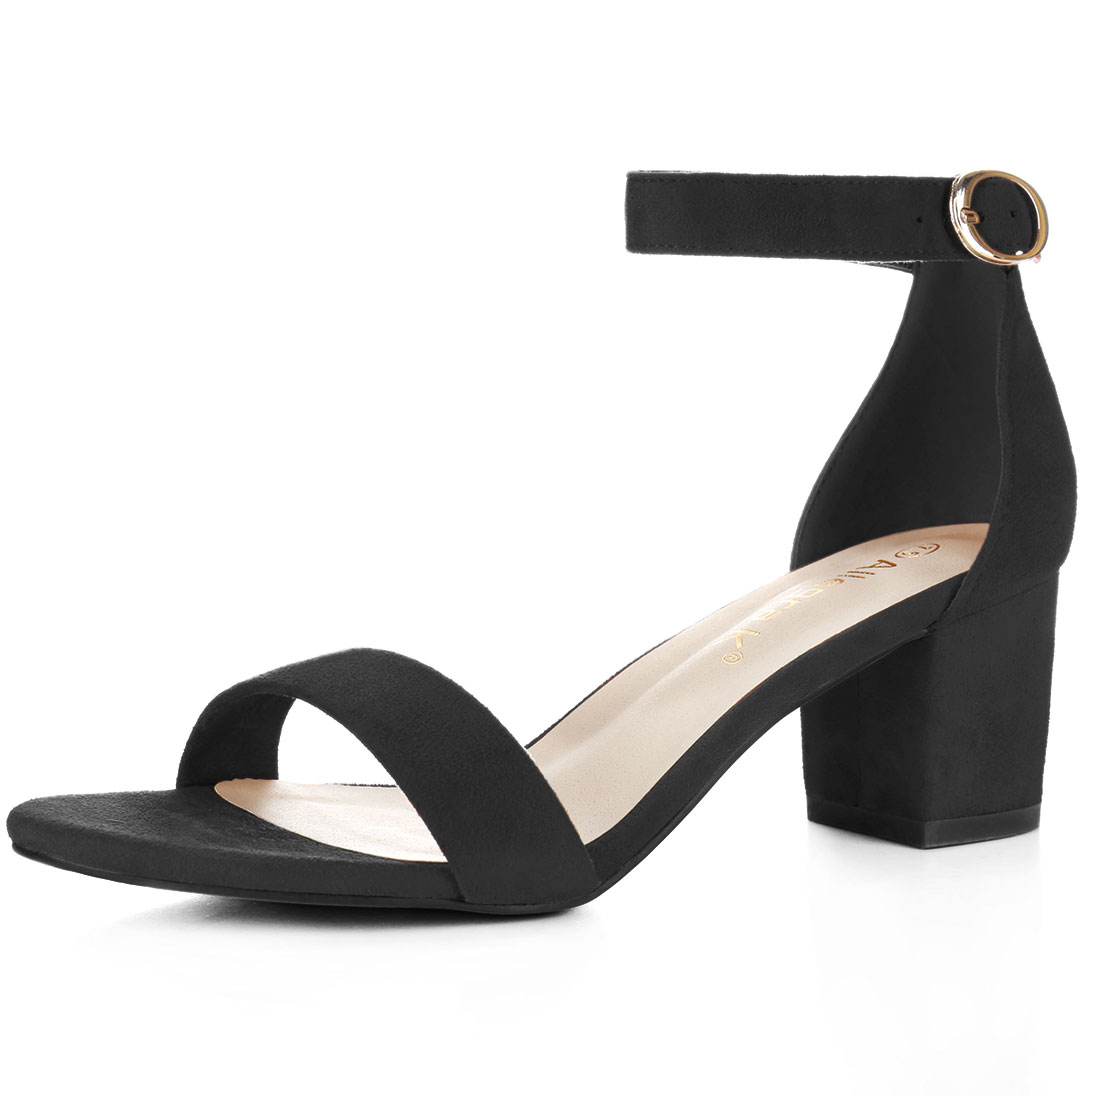 Women Open Toe Mid Block Heel Ankle Strap Sandals Black US 10.5